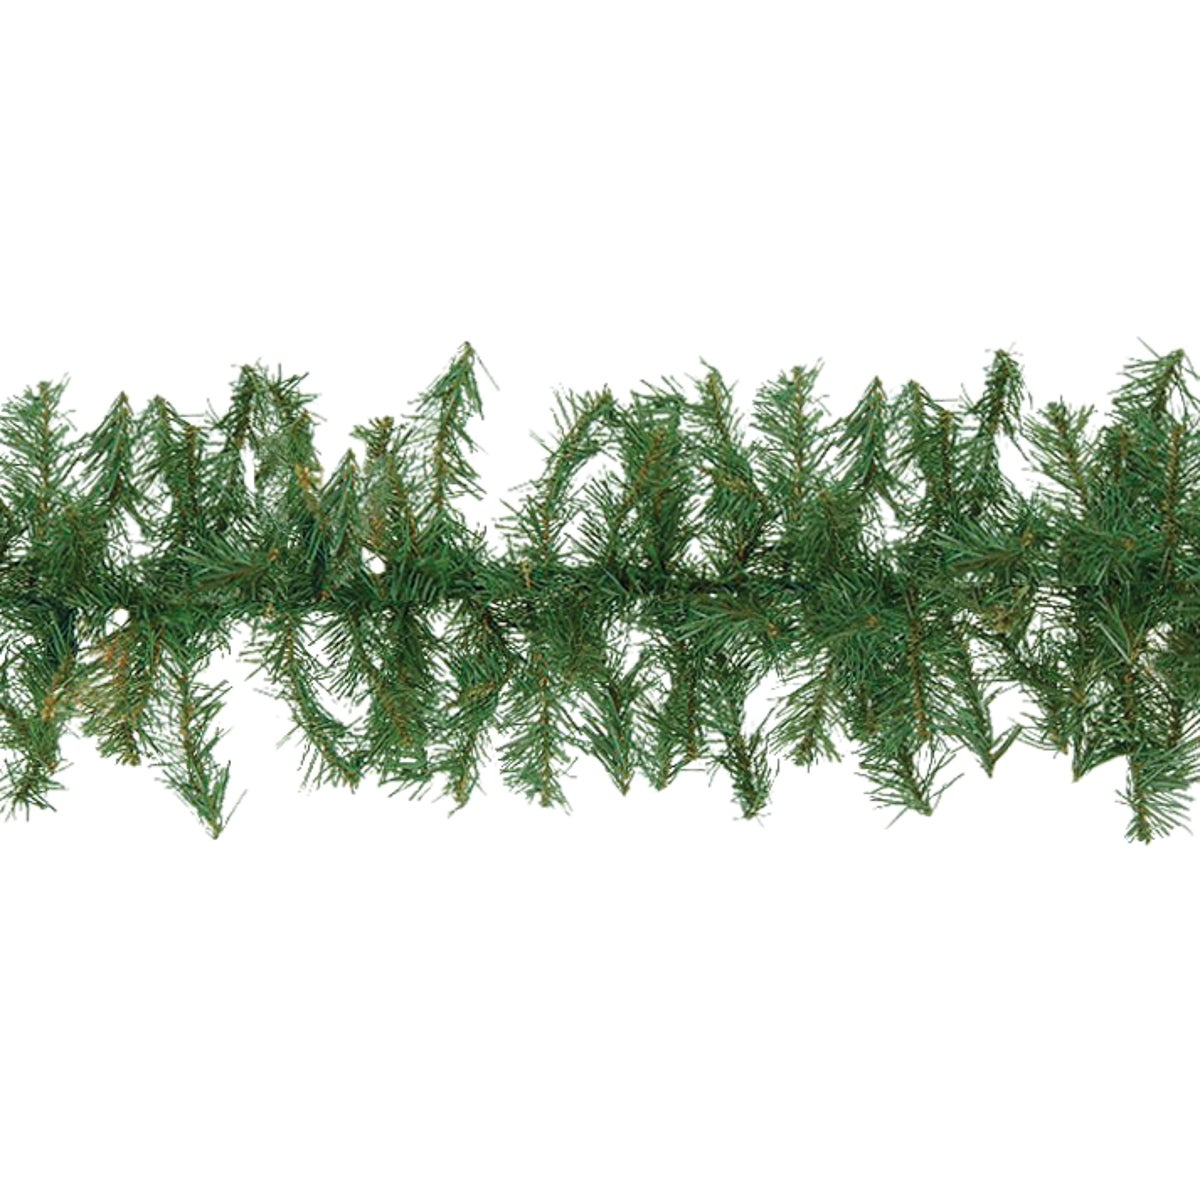 9X8 CANADIAN GARLAND - 430100 by Sterling